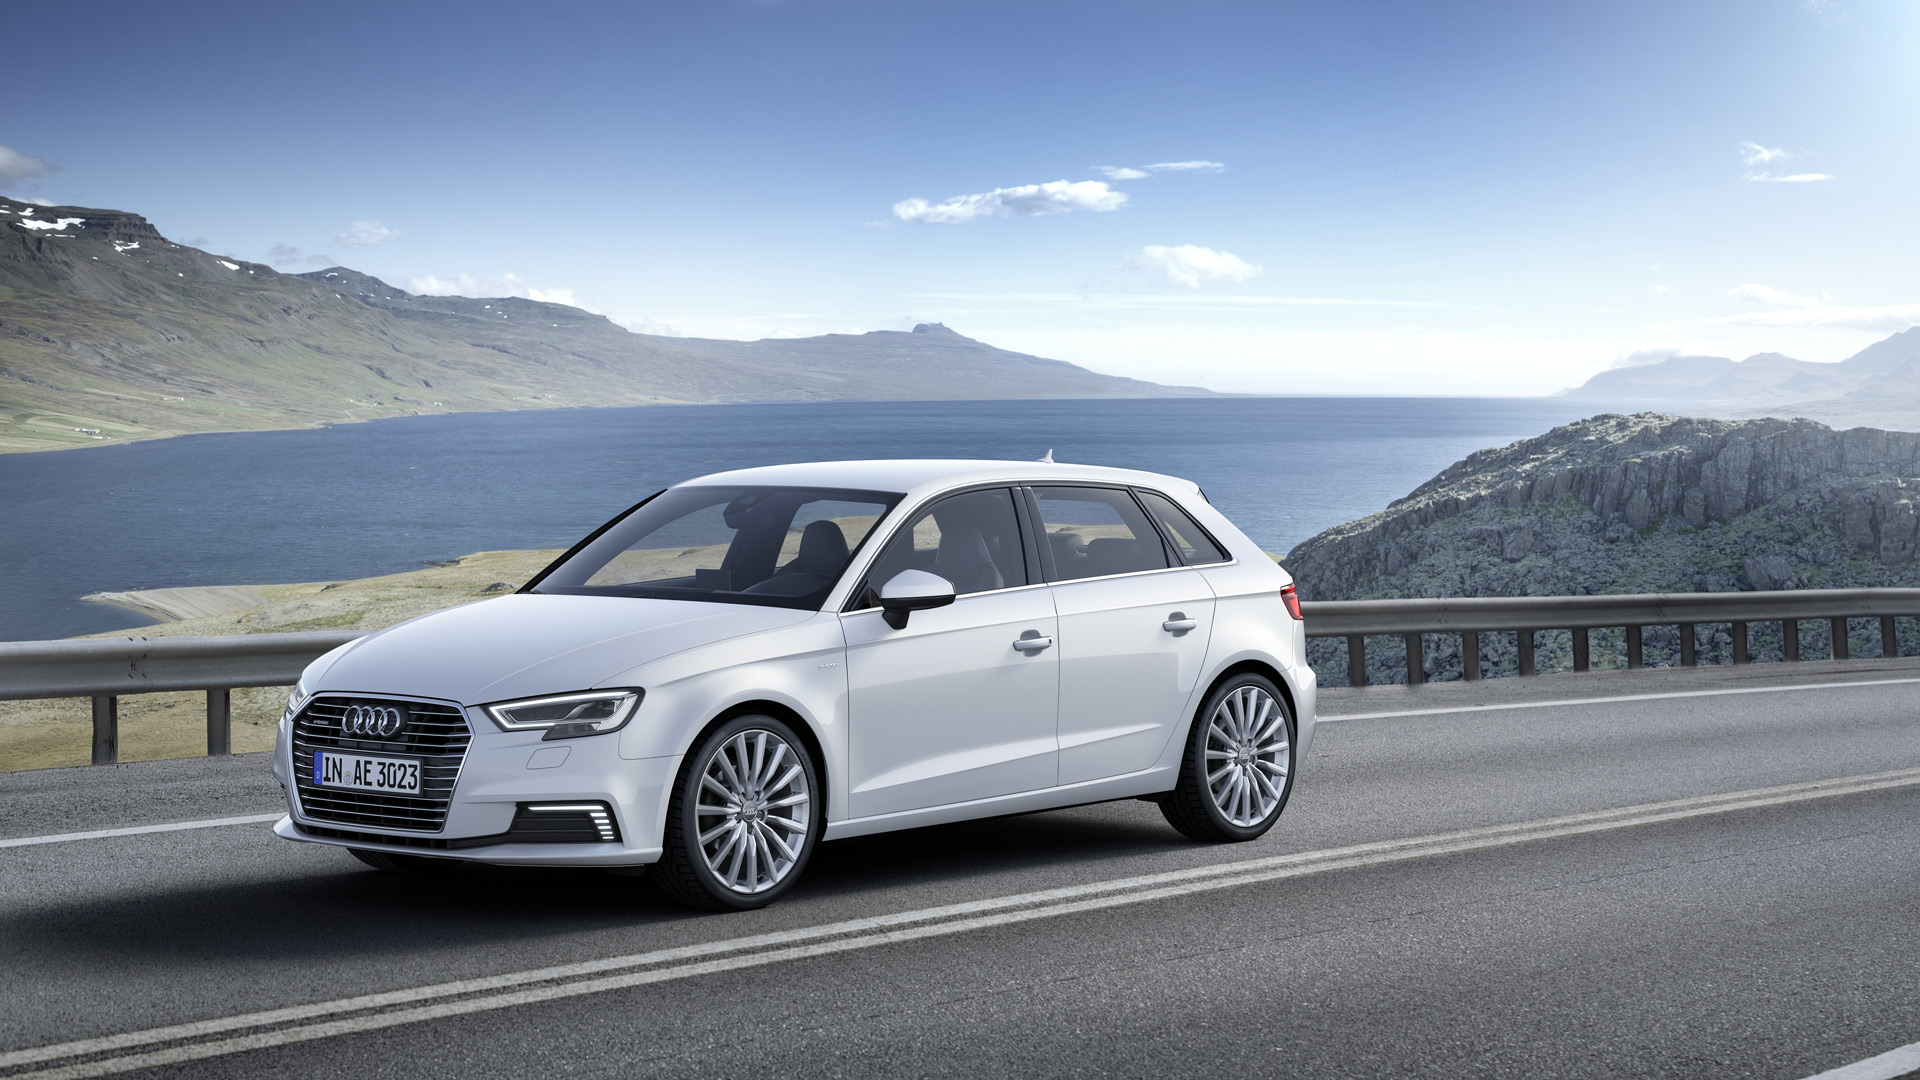 2017 audi a3 e tron sportback remains sole a3 with hatch body. Black Bedroom Furniture Sets. Home Design Ideas